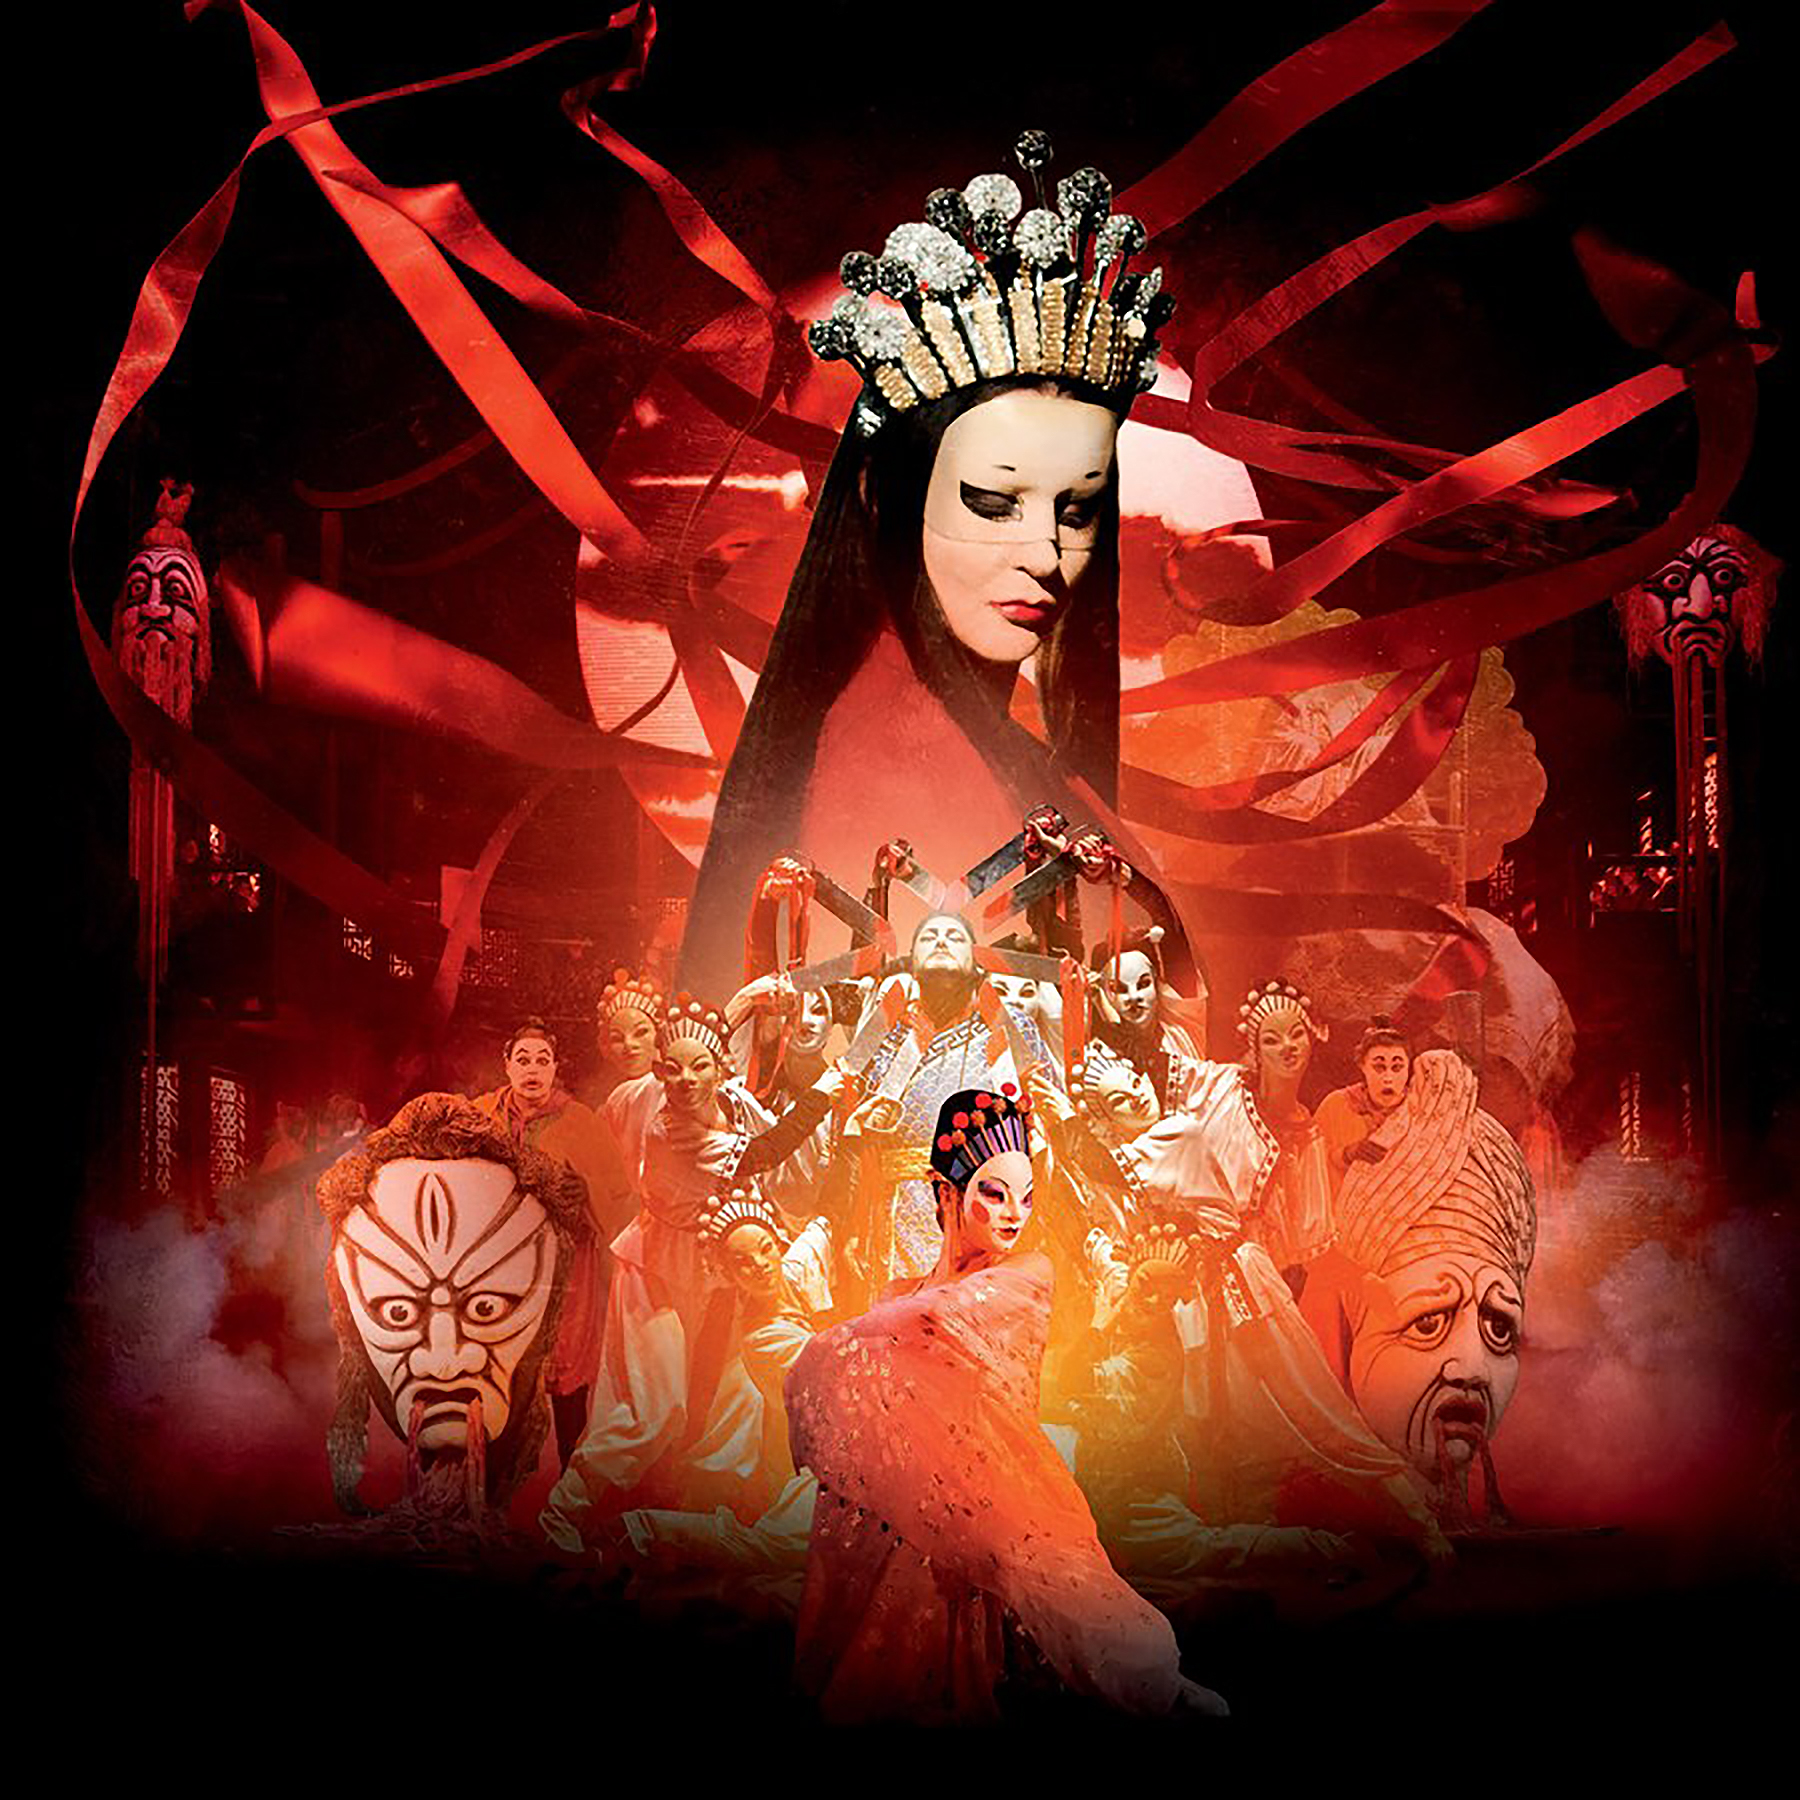 Wichita Grand Opera Presents a new Production of Puccini's Turandot, August 28, 2015